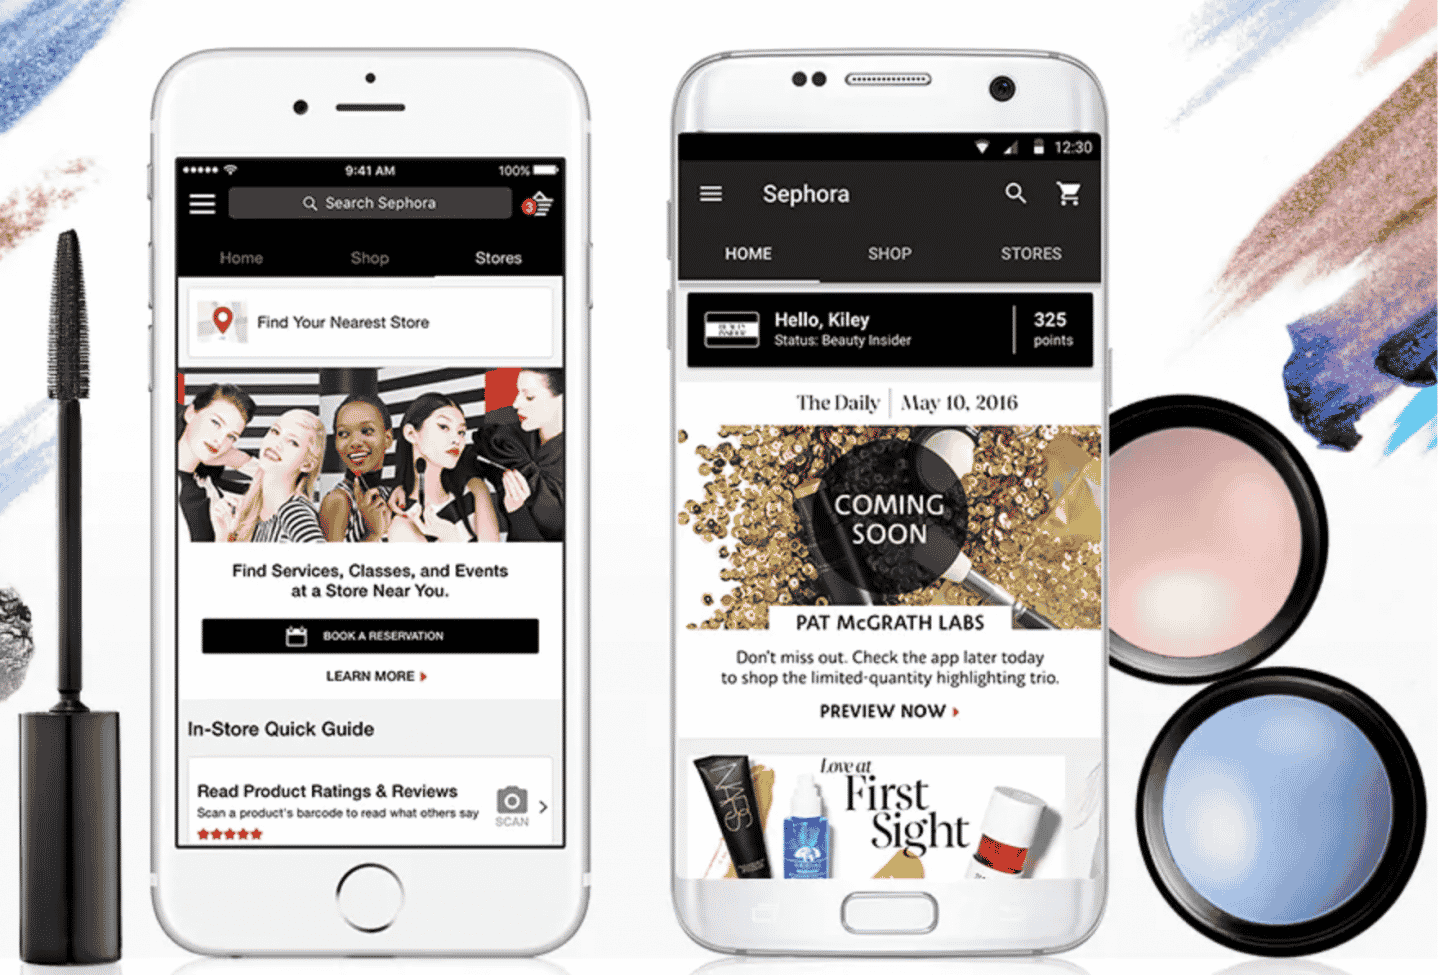 Inside the Perfect Personalization of the Sephora App